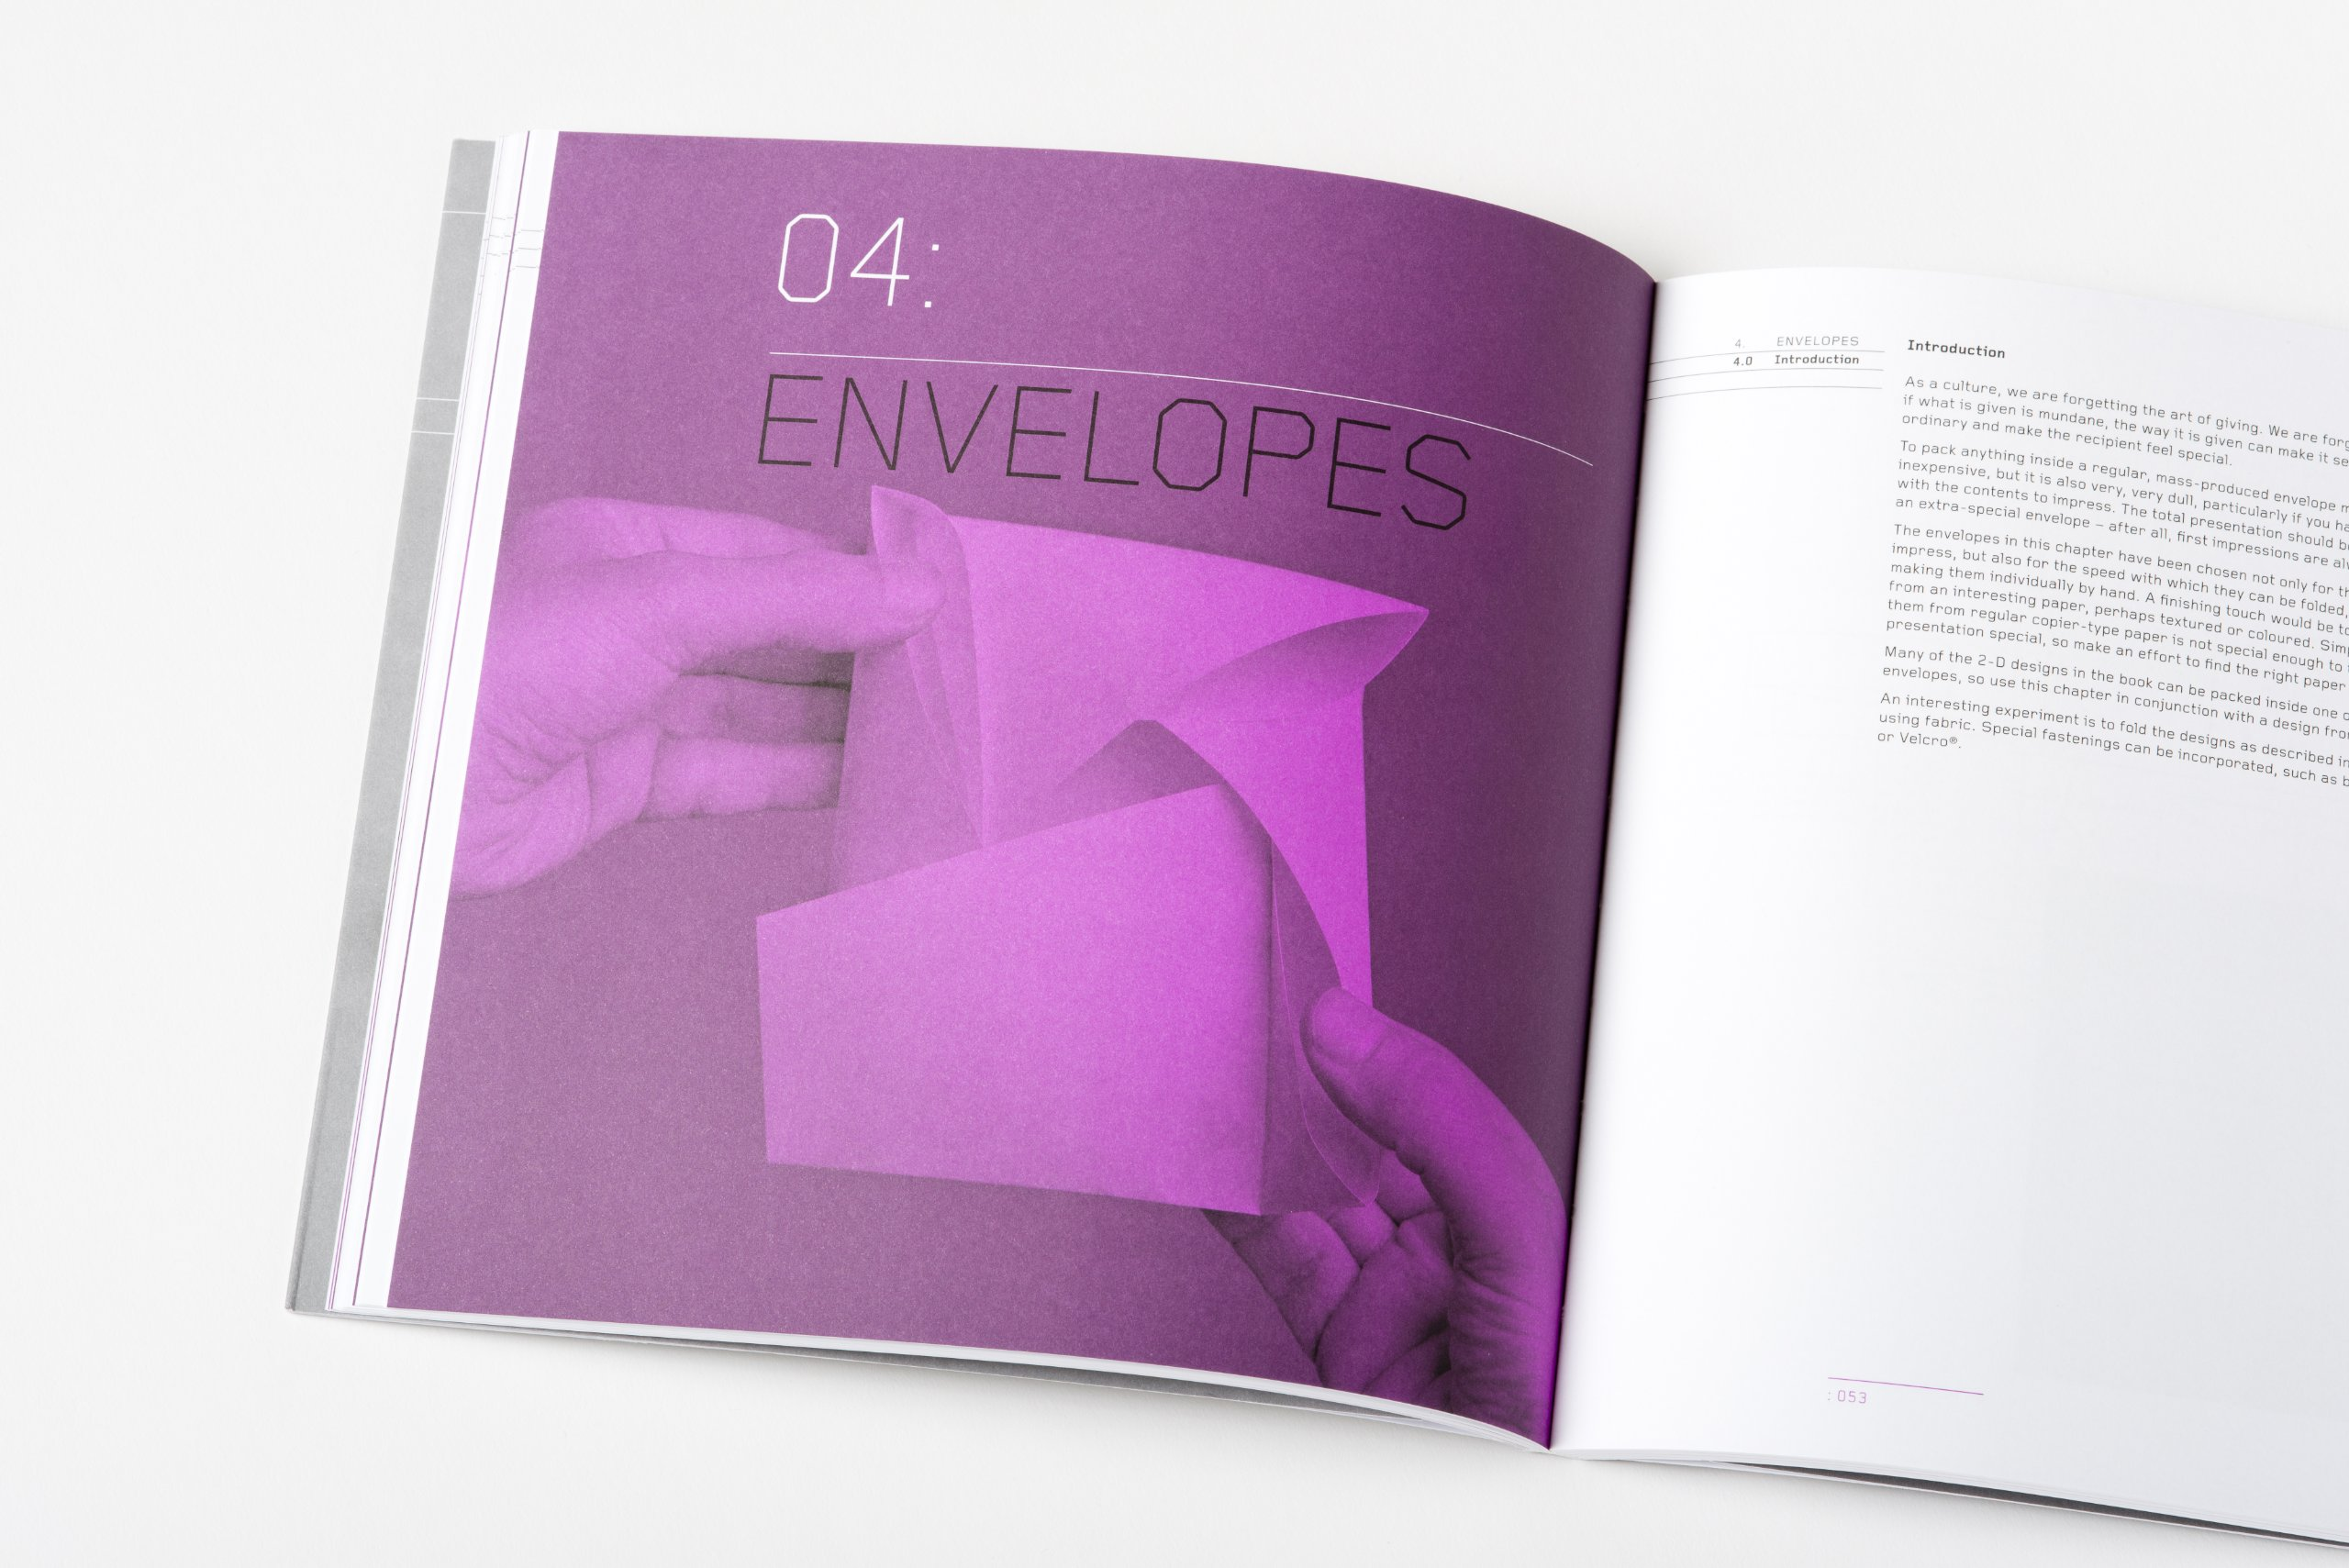 Buy cut fold techniques for promotional materials book online at buy cut fold techniques for promotional materials book online at low prices in india cut fold techniques for promotional materials reviews ratings fandeluxe Choice Image